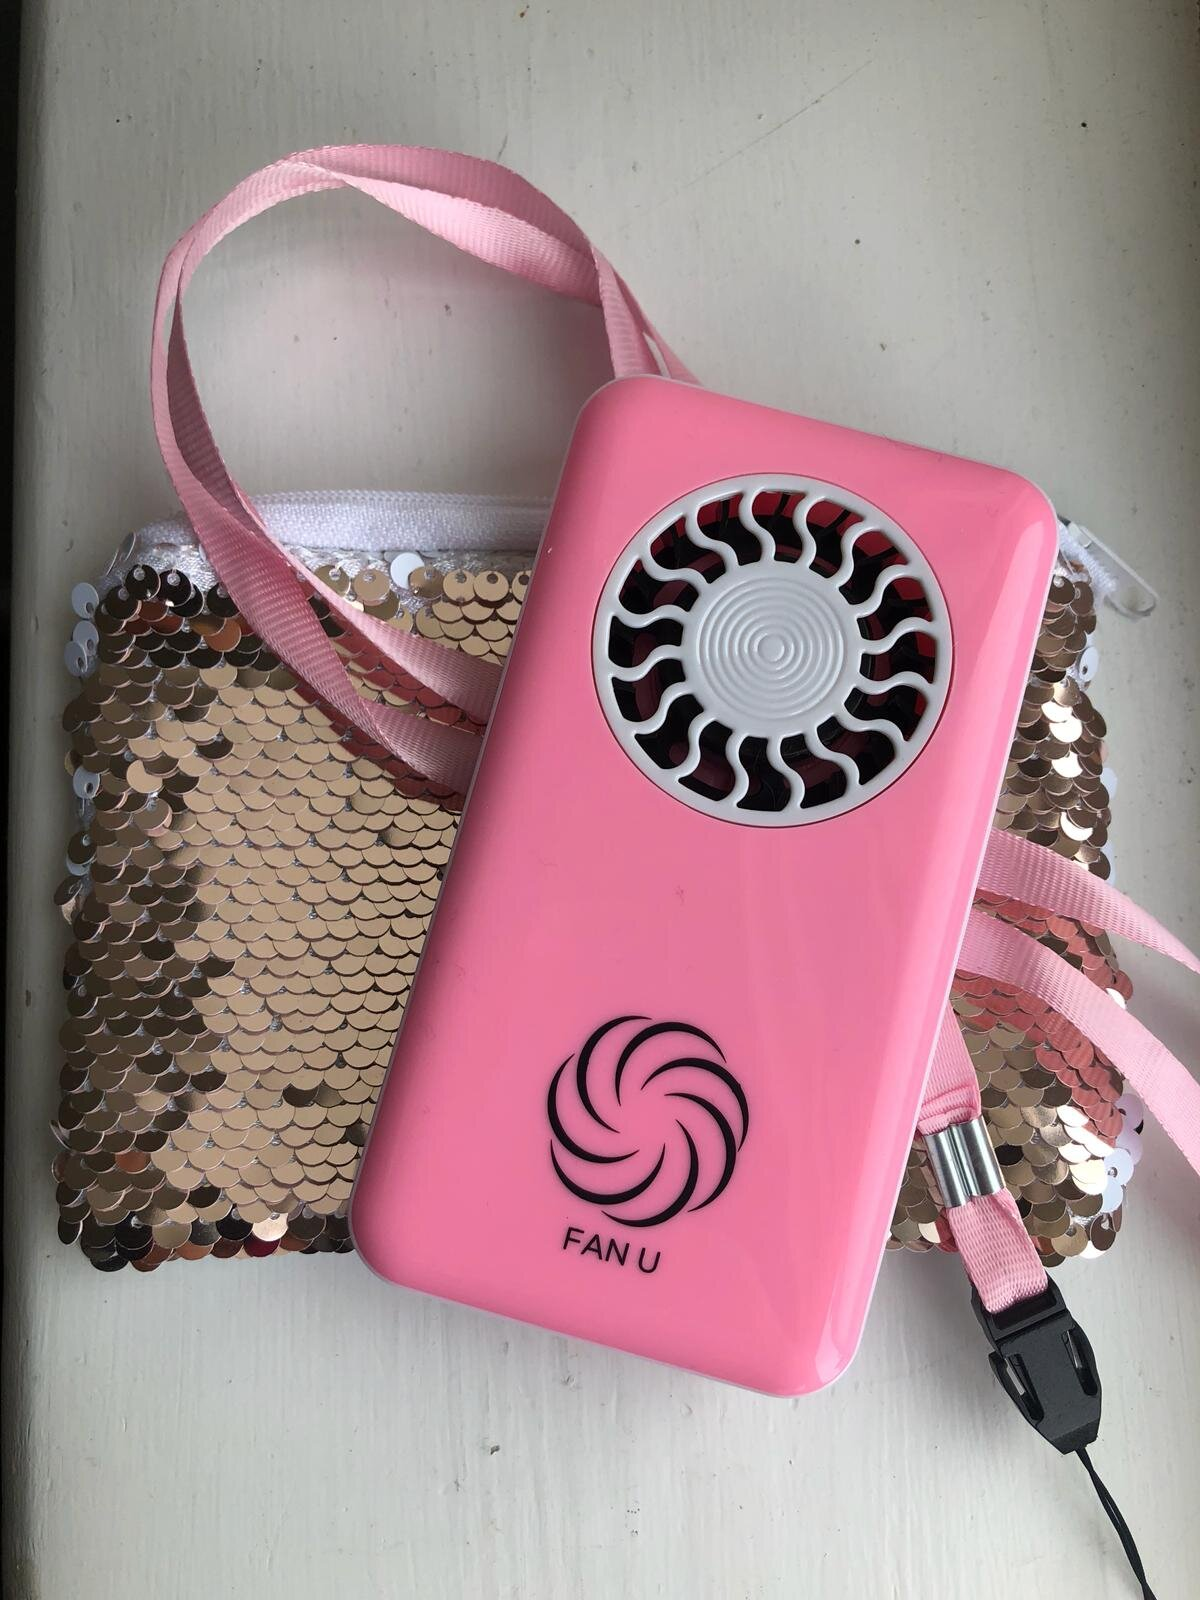 Ready,Steady Lets go Pink! - BUY YOUR SPECIAL EDITION PINK FANU, PINK LANYARD AND STUNNING SEQUIN ROSE GOLD AND WHITE REVERSIBLE POUCH £19.99 INCLUDING P&Phttps://www.fanu.co.uk/shop-now/gopink